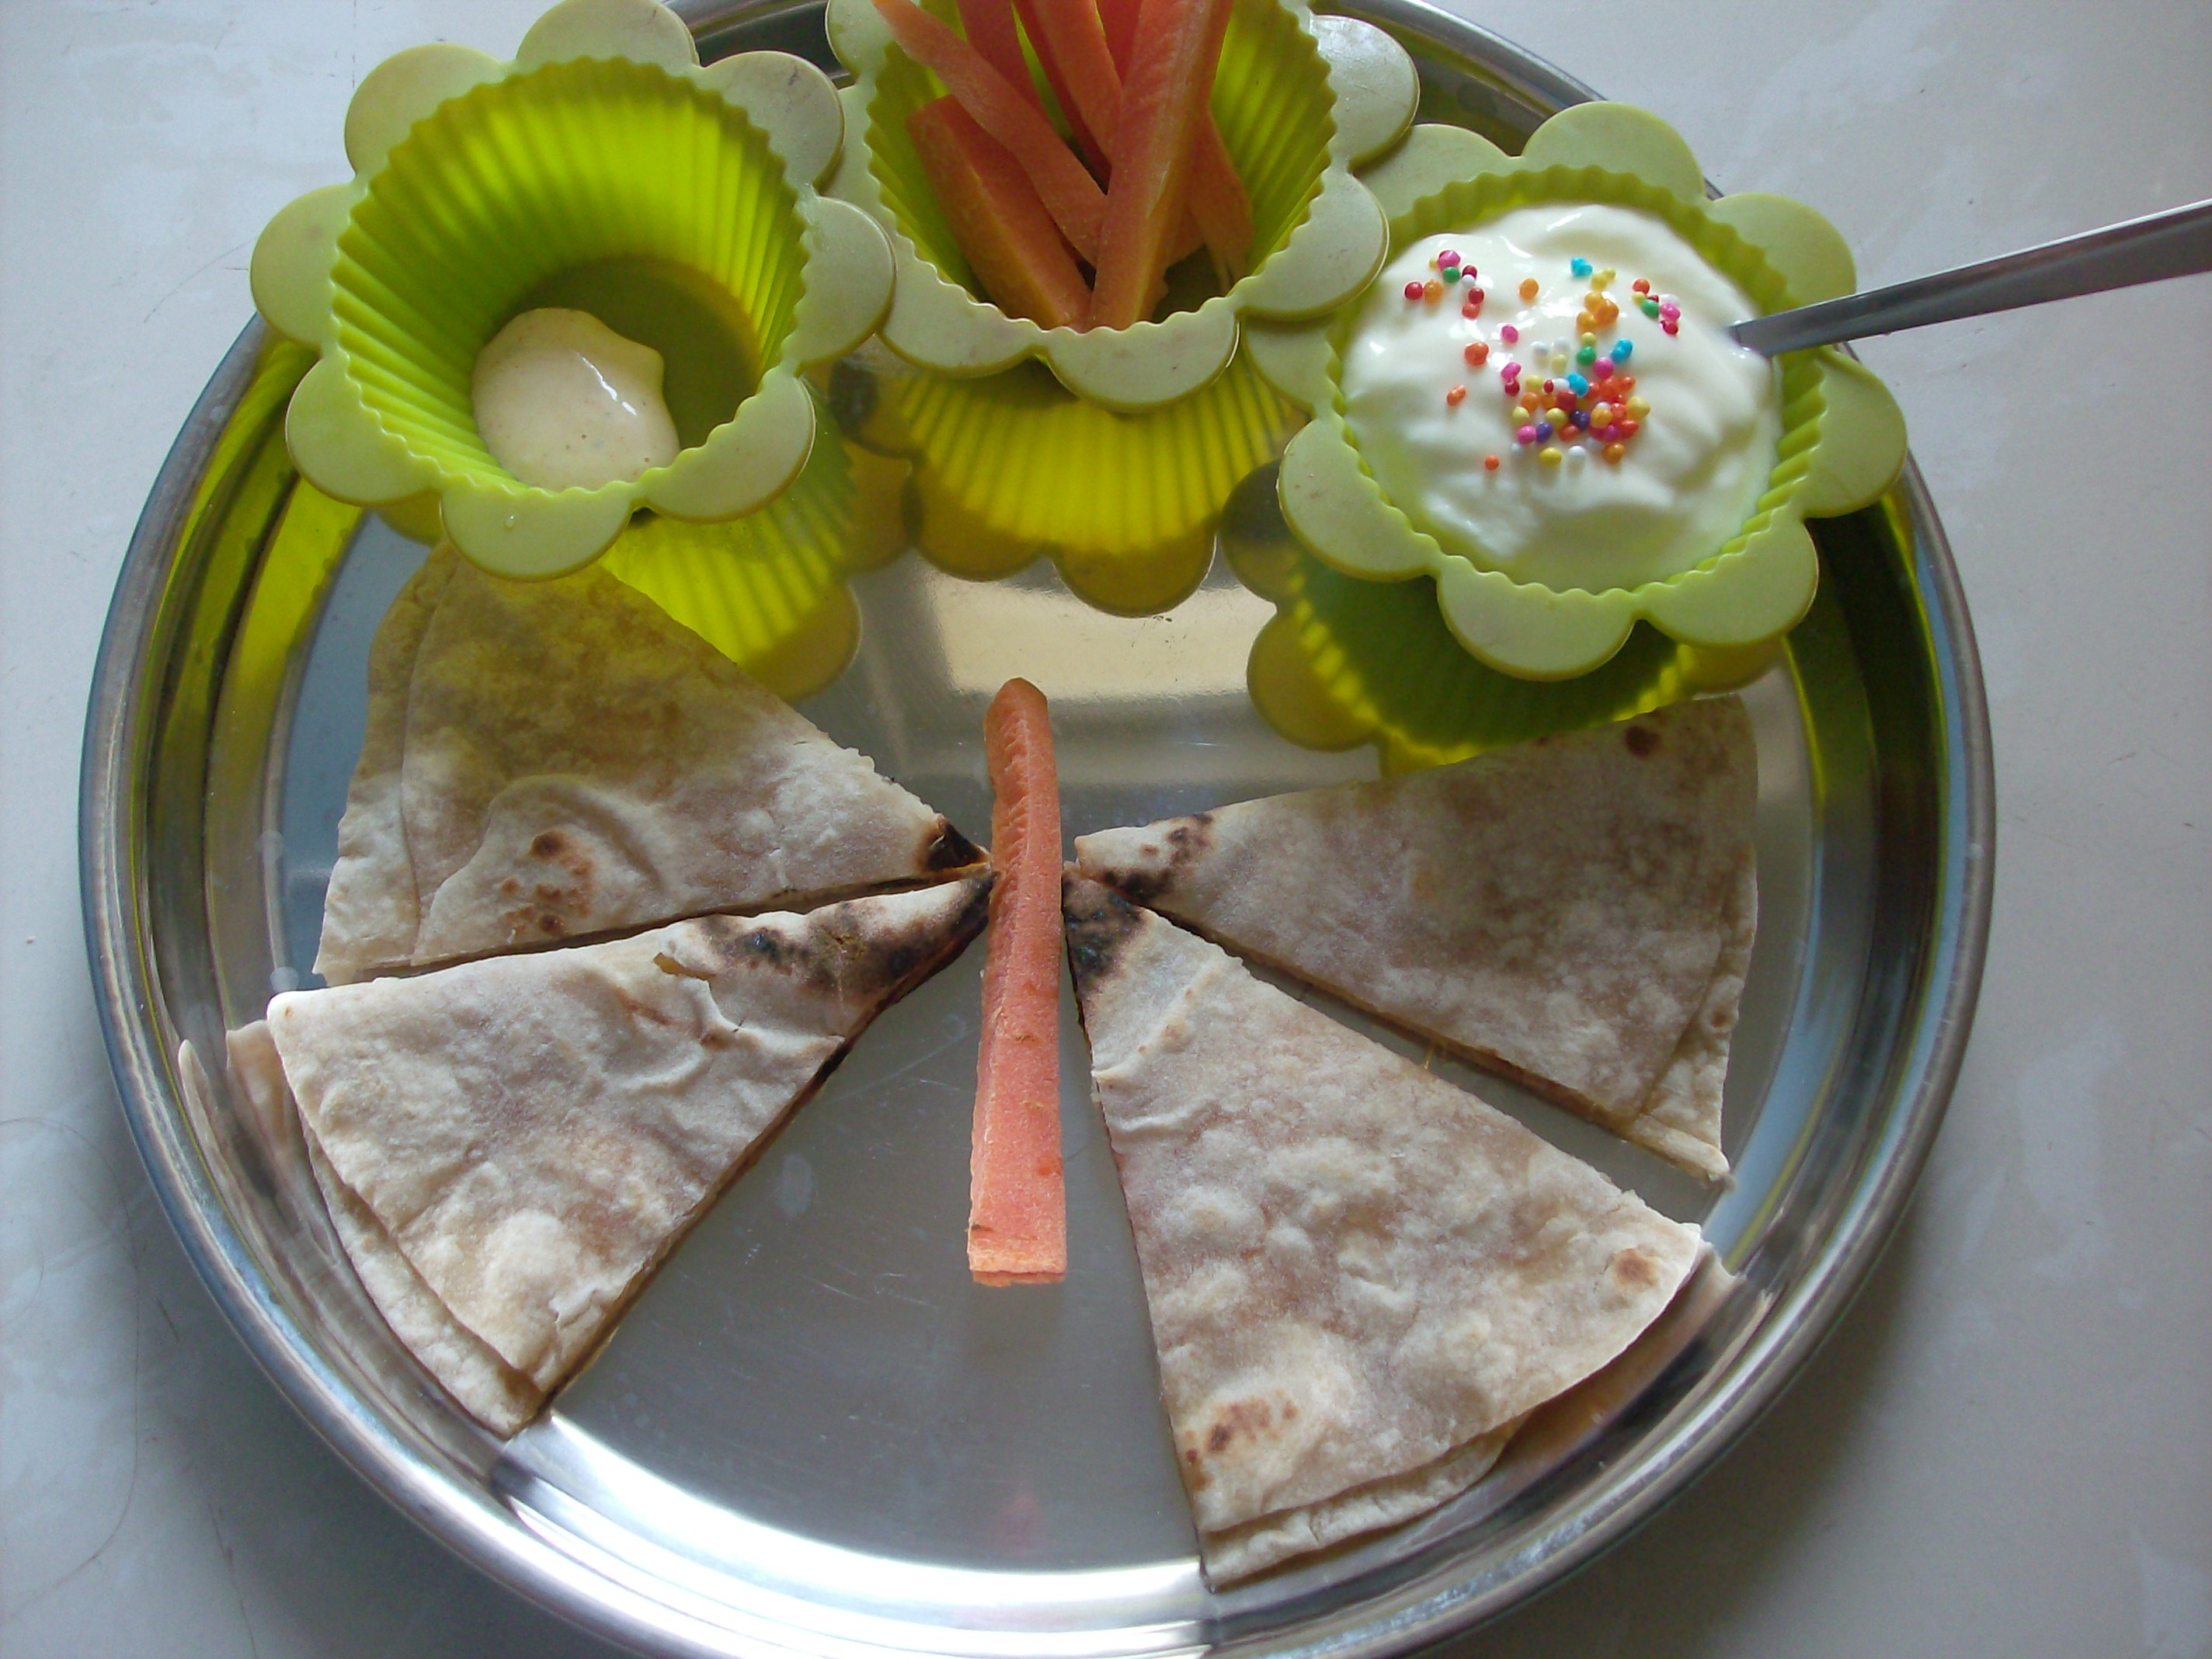 Muffin Tin Meal: Butterflies and Flowers